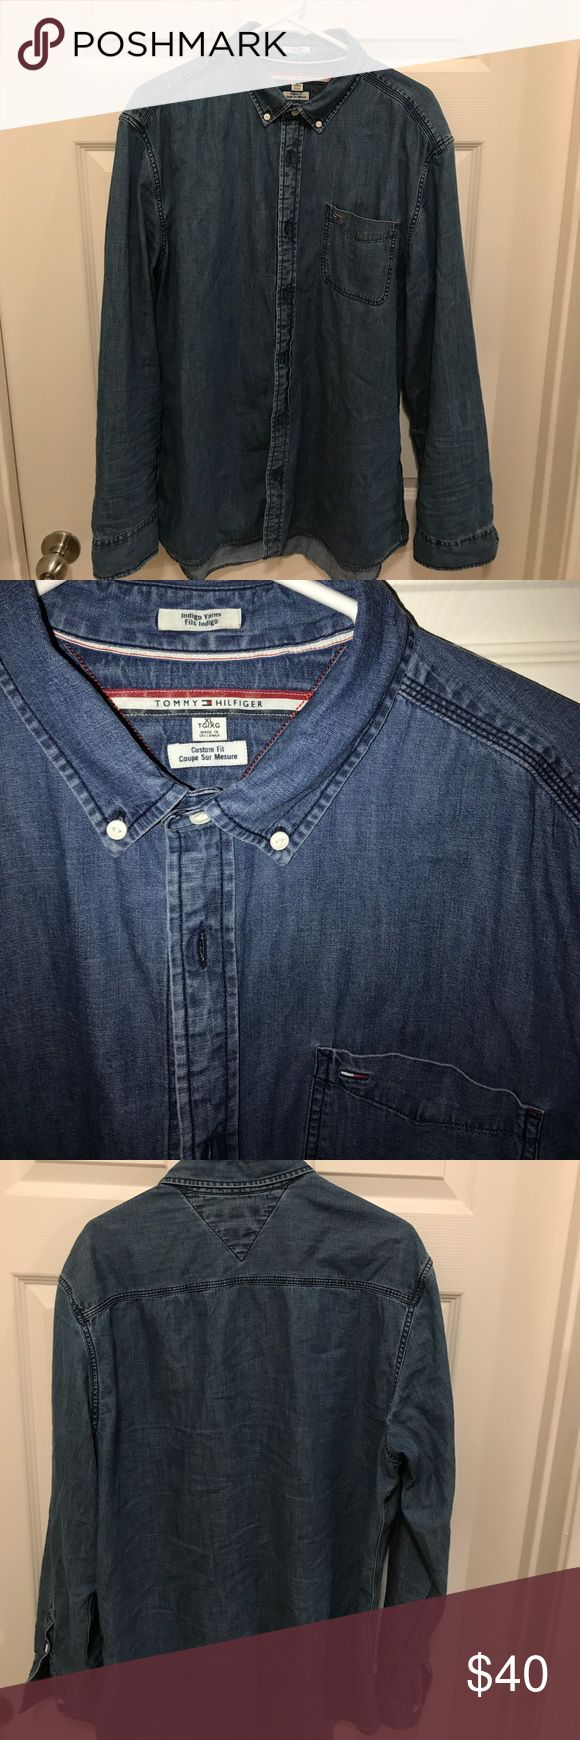 Tommy Hilfiger Denim Shirt XL Long sleeve Tommy Hilfiger denim shirt. Worn twice washed once. Selling because it doesn't fit me I found a 2X like 6 months later so I couldn't return this one to store. Paid $80 asking for $40 or best offer Tommy Hilfiger Shirts Casual Button Down Shirts